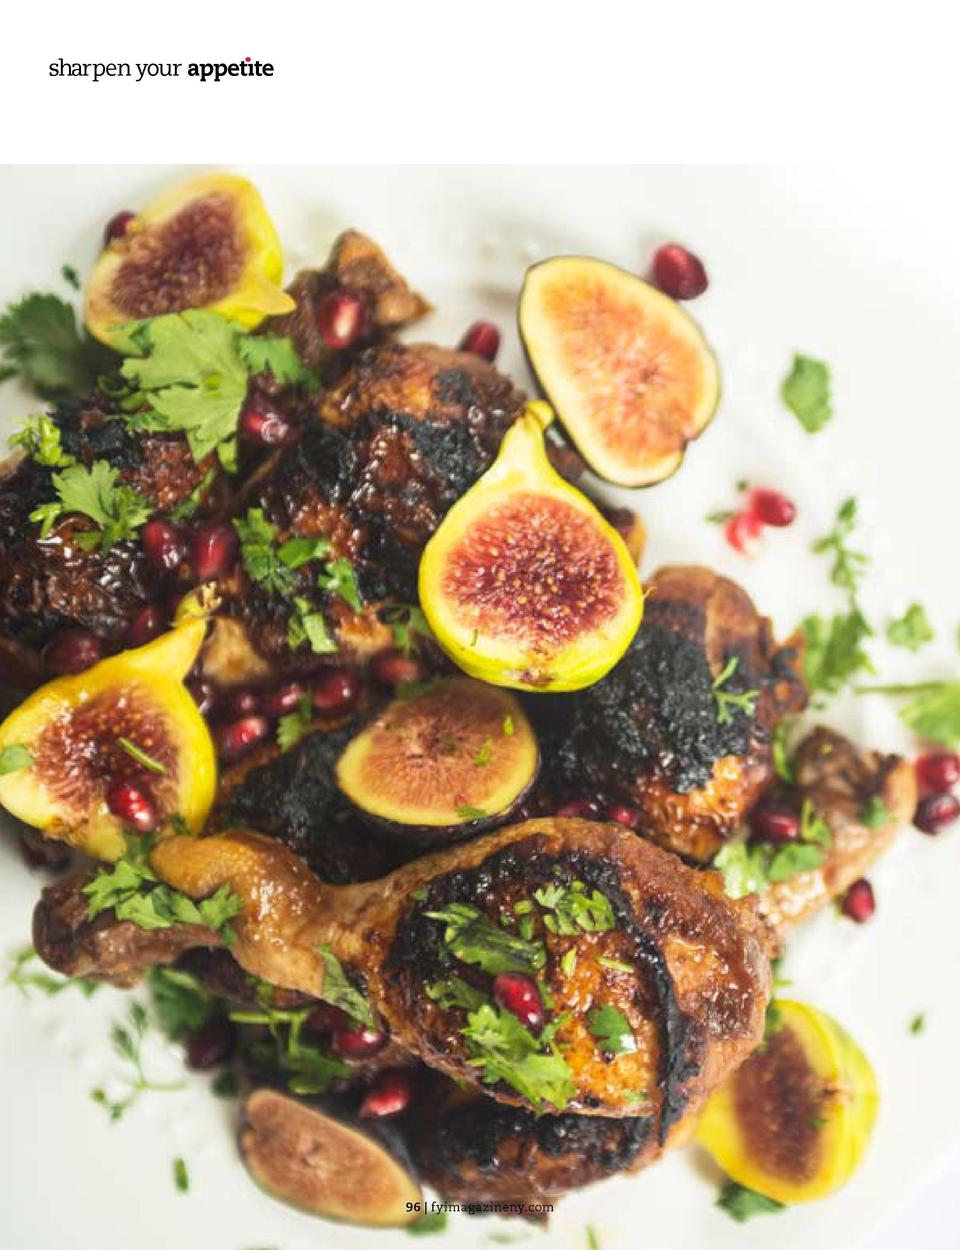 sharpen your appet  te  MAIN  Jeweled Chicken SHUSHY TURIN   COOKING IN HEELS  Making this chicken recipe for Rosh Hashana...